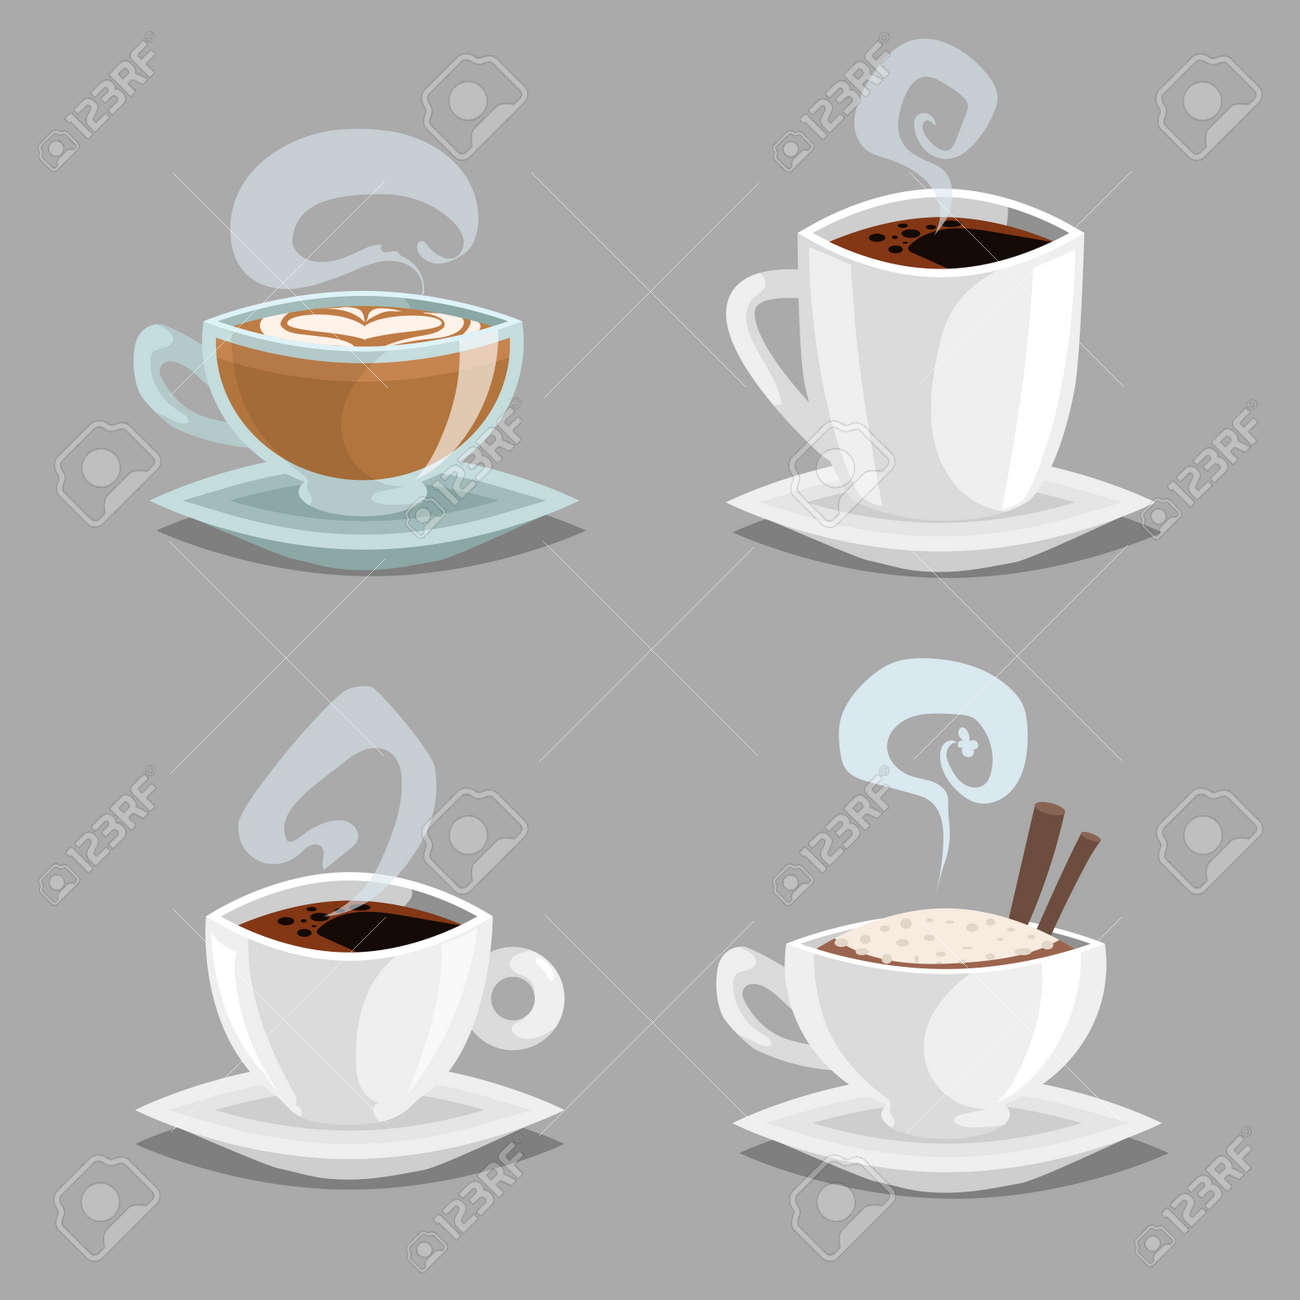 Cartoon Set Of Different Coffee Cups White And Clean Glass Cups Royalty Free Cliparts Vectors And Stock Illustration Image 124875374